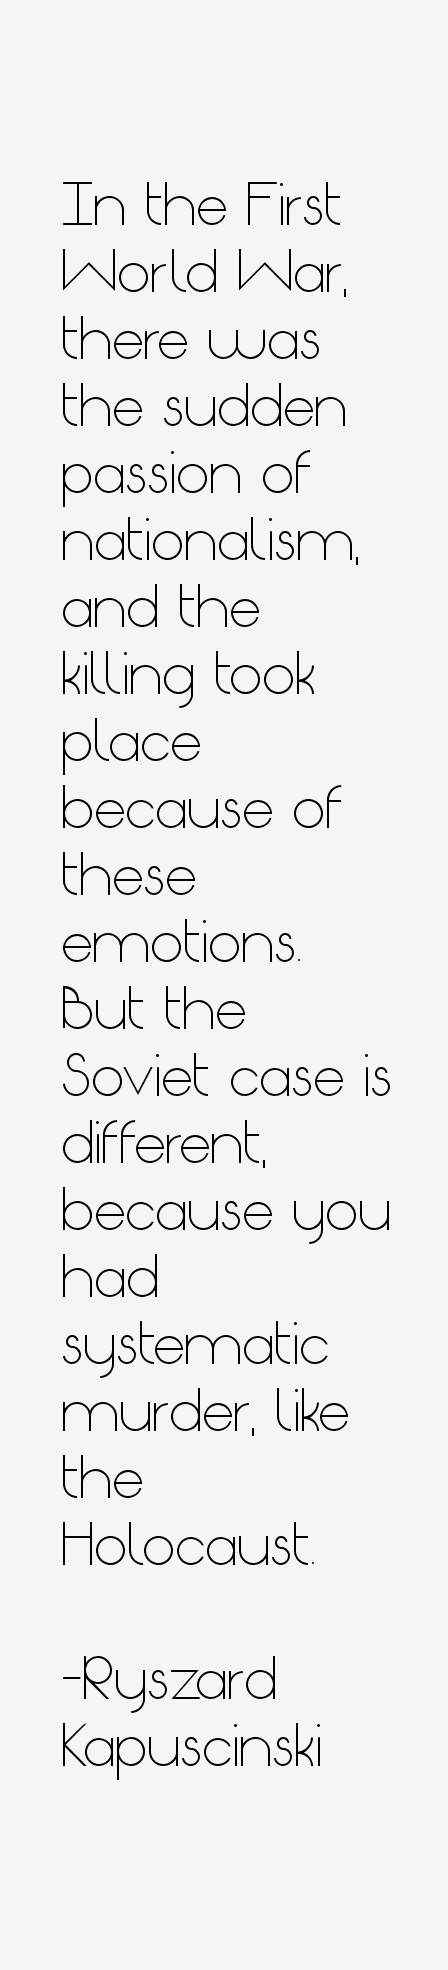 the holocaust and world war ll essay The holocaust & world war ii - assignment 2: the final solution essay the holocaust & world war ii - assignment 3: primary sources essay go to required assignments for history 311: the holocaust.